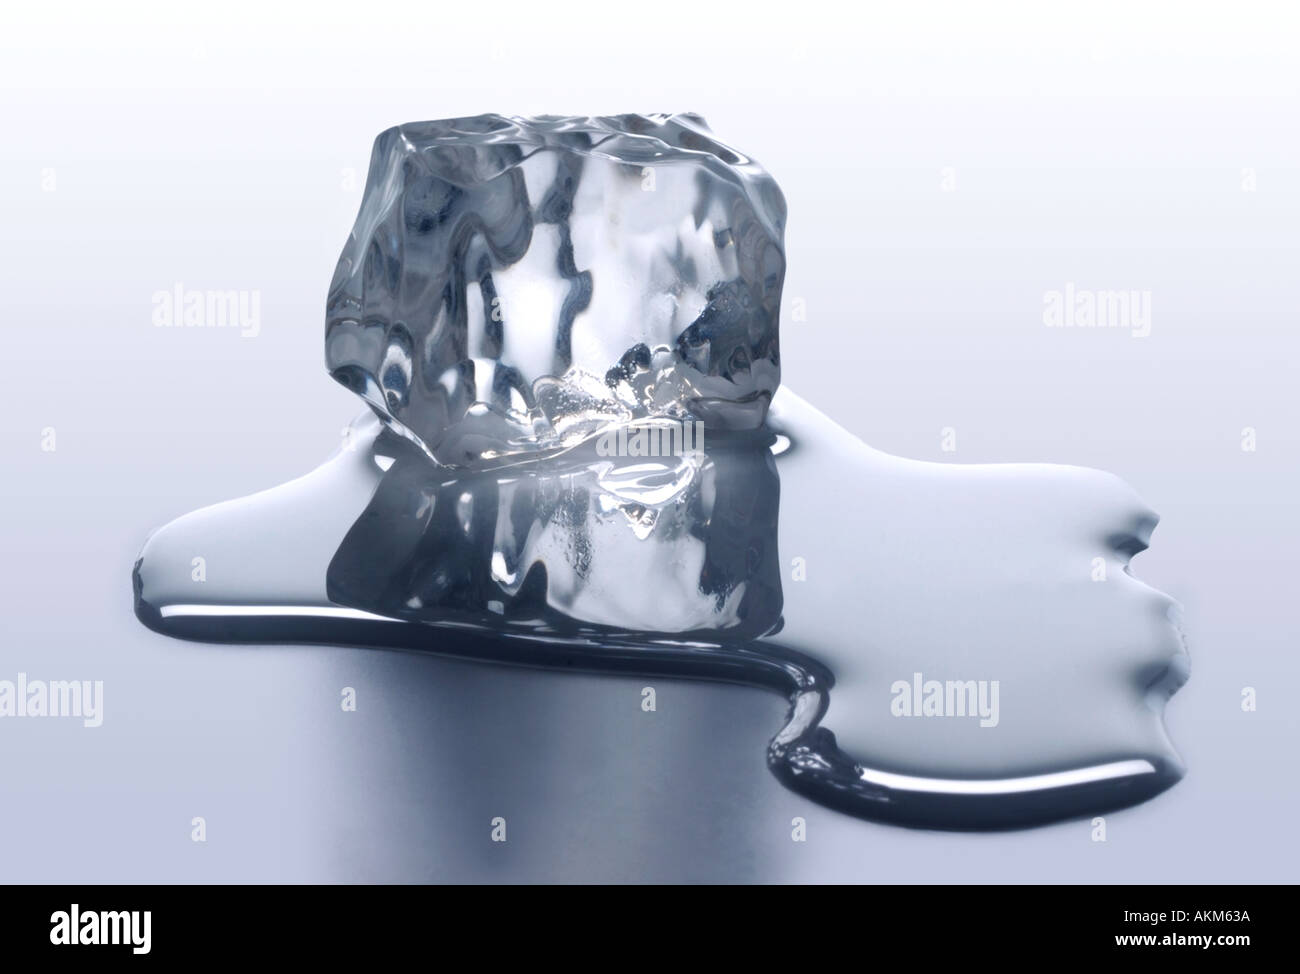 melting an ice cube wwwpixsharkcom images galleries